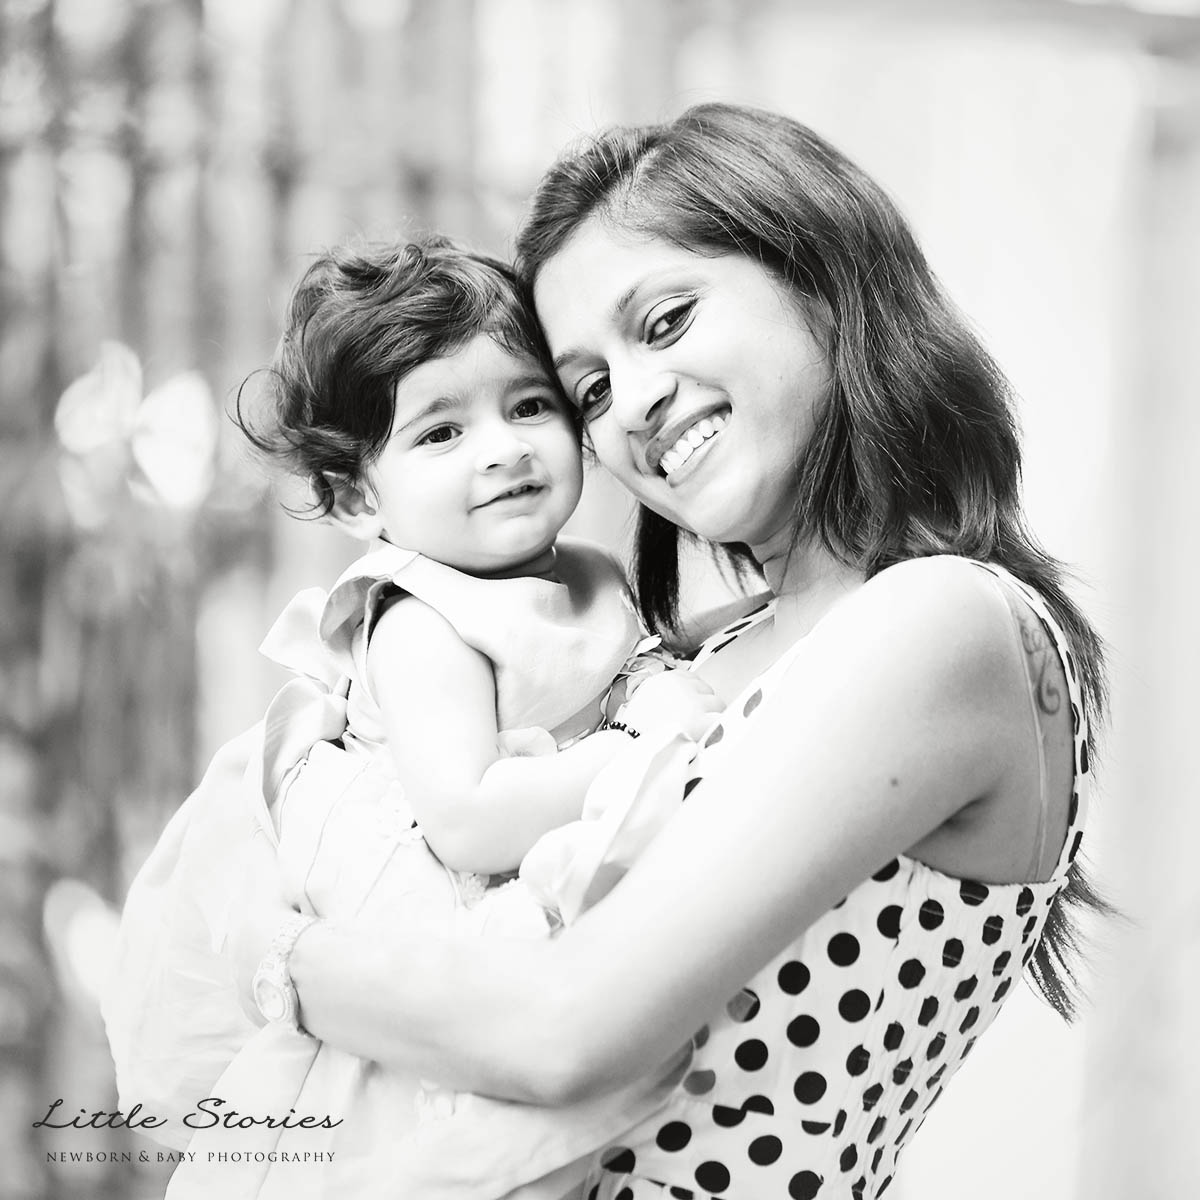 little-stories-kids-photography-happy-stories-stuti